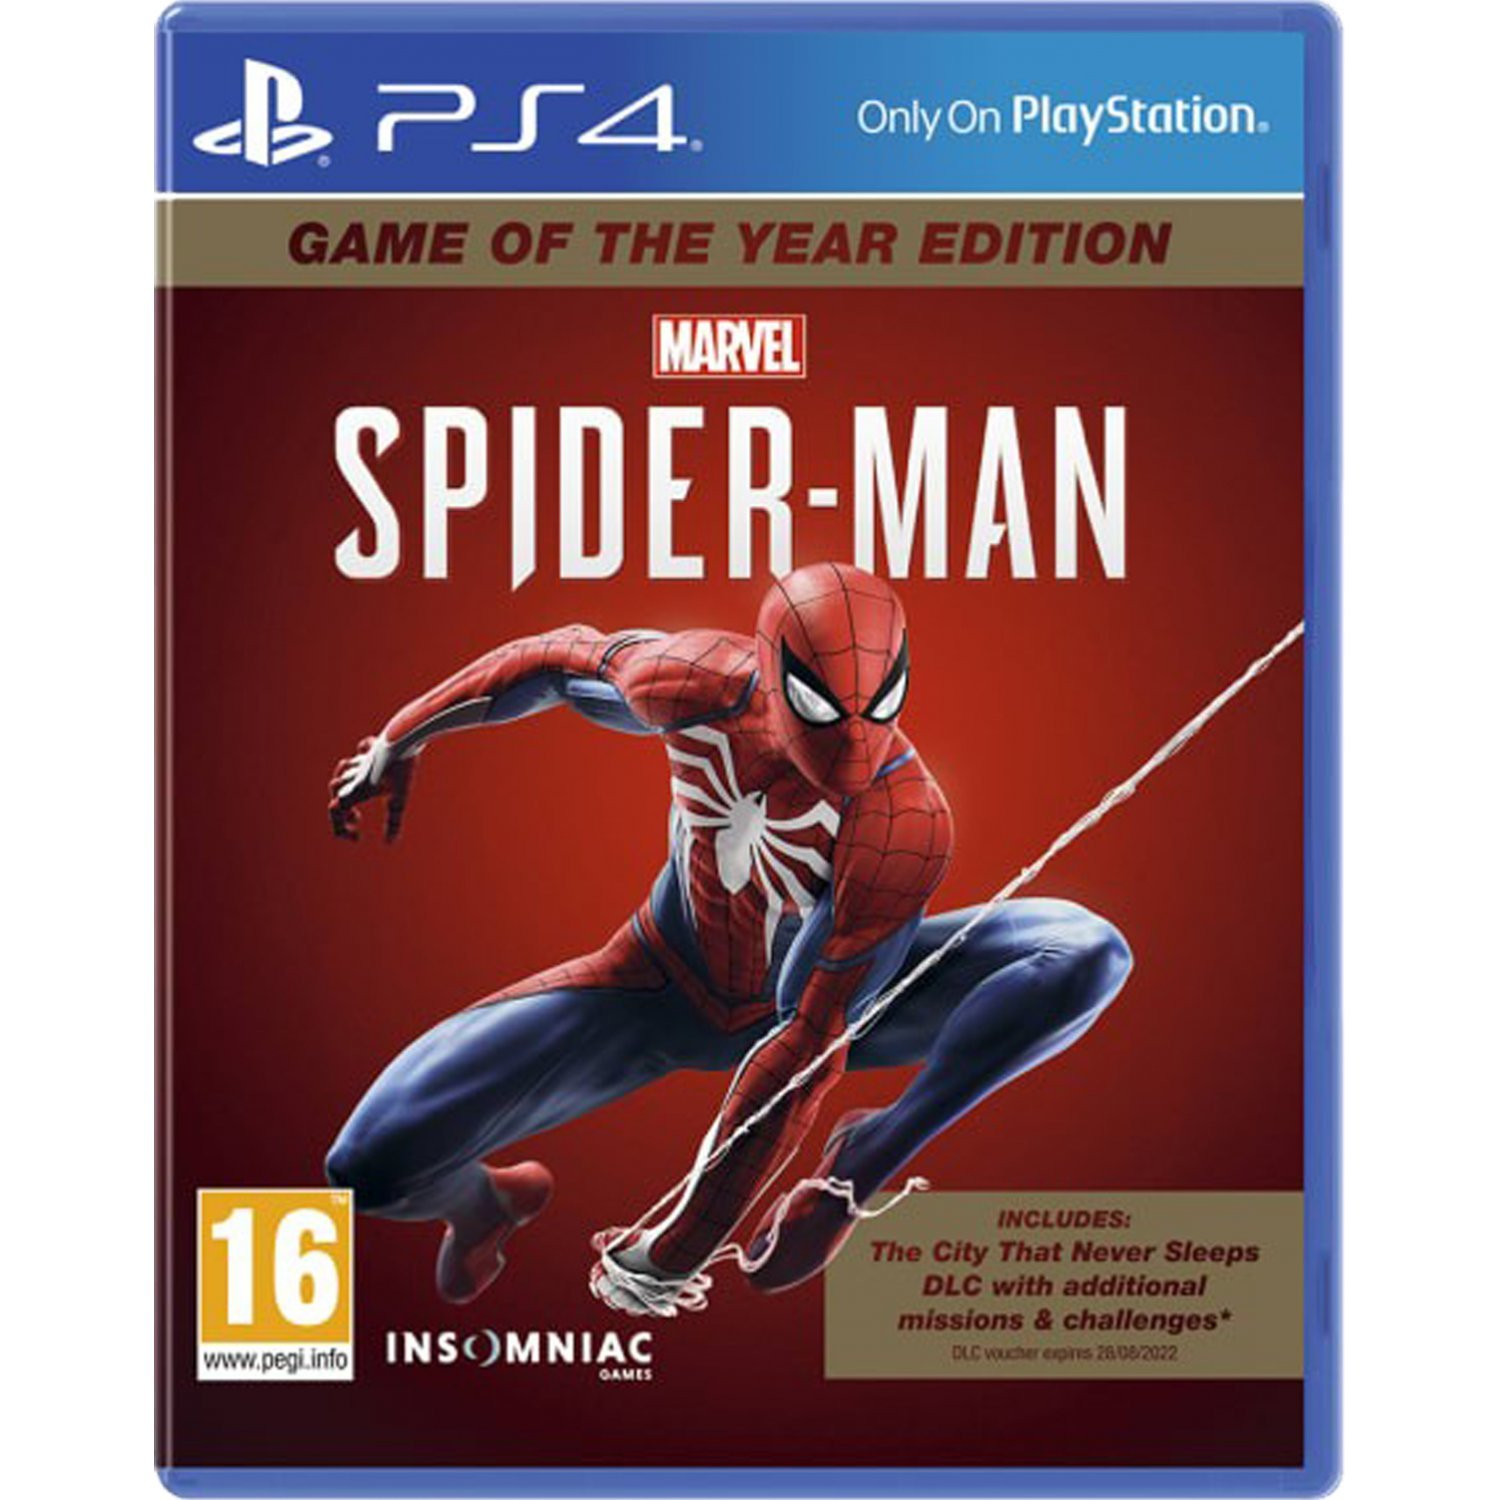 marvels-spiderman-game-of-the-year-edition-606123.19.jpg